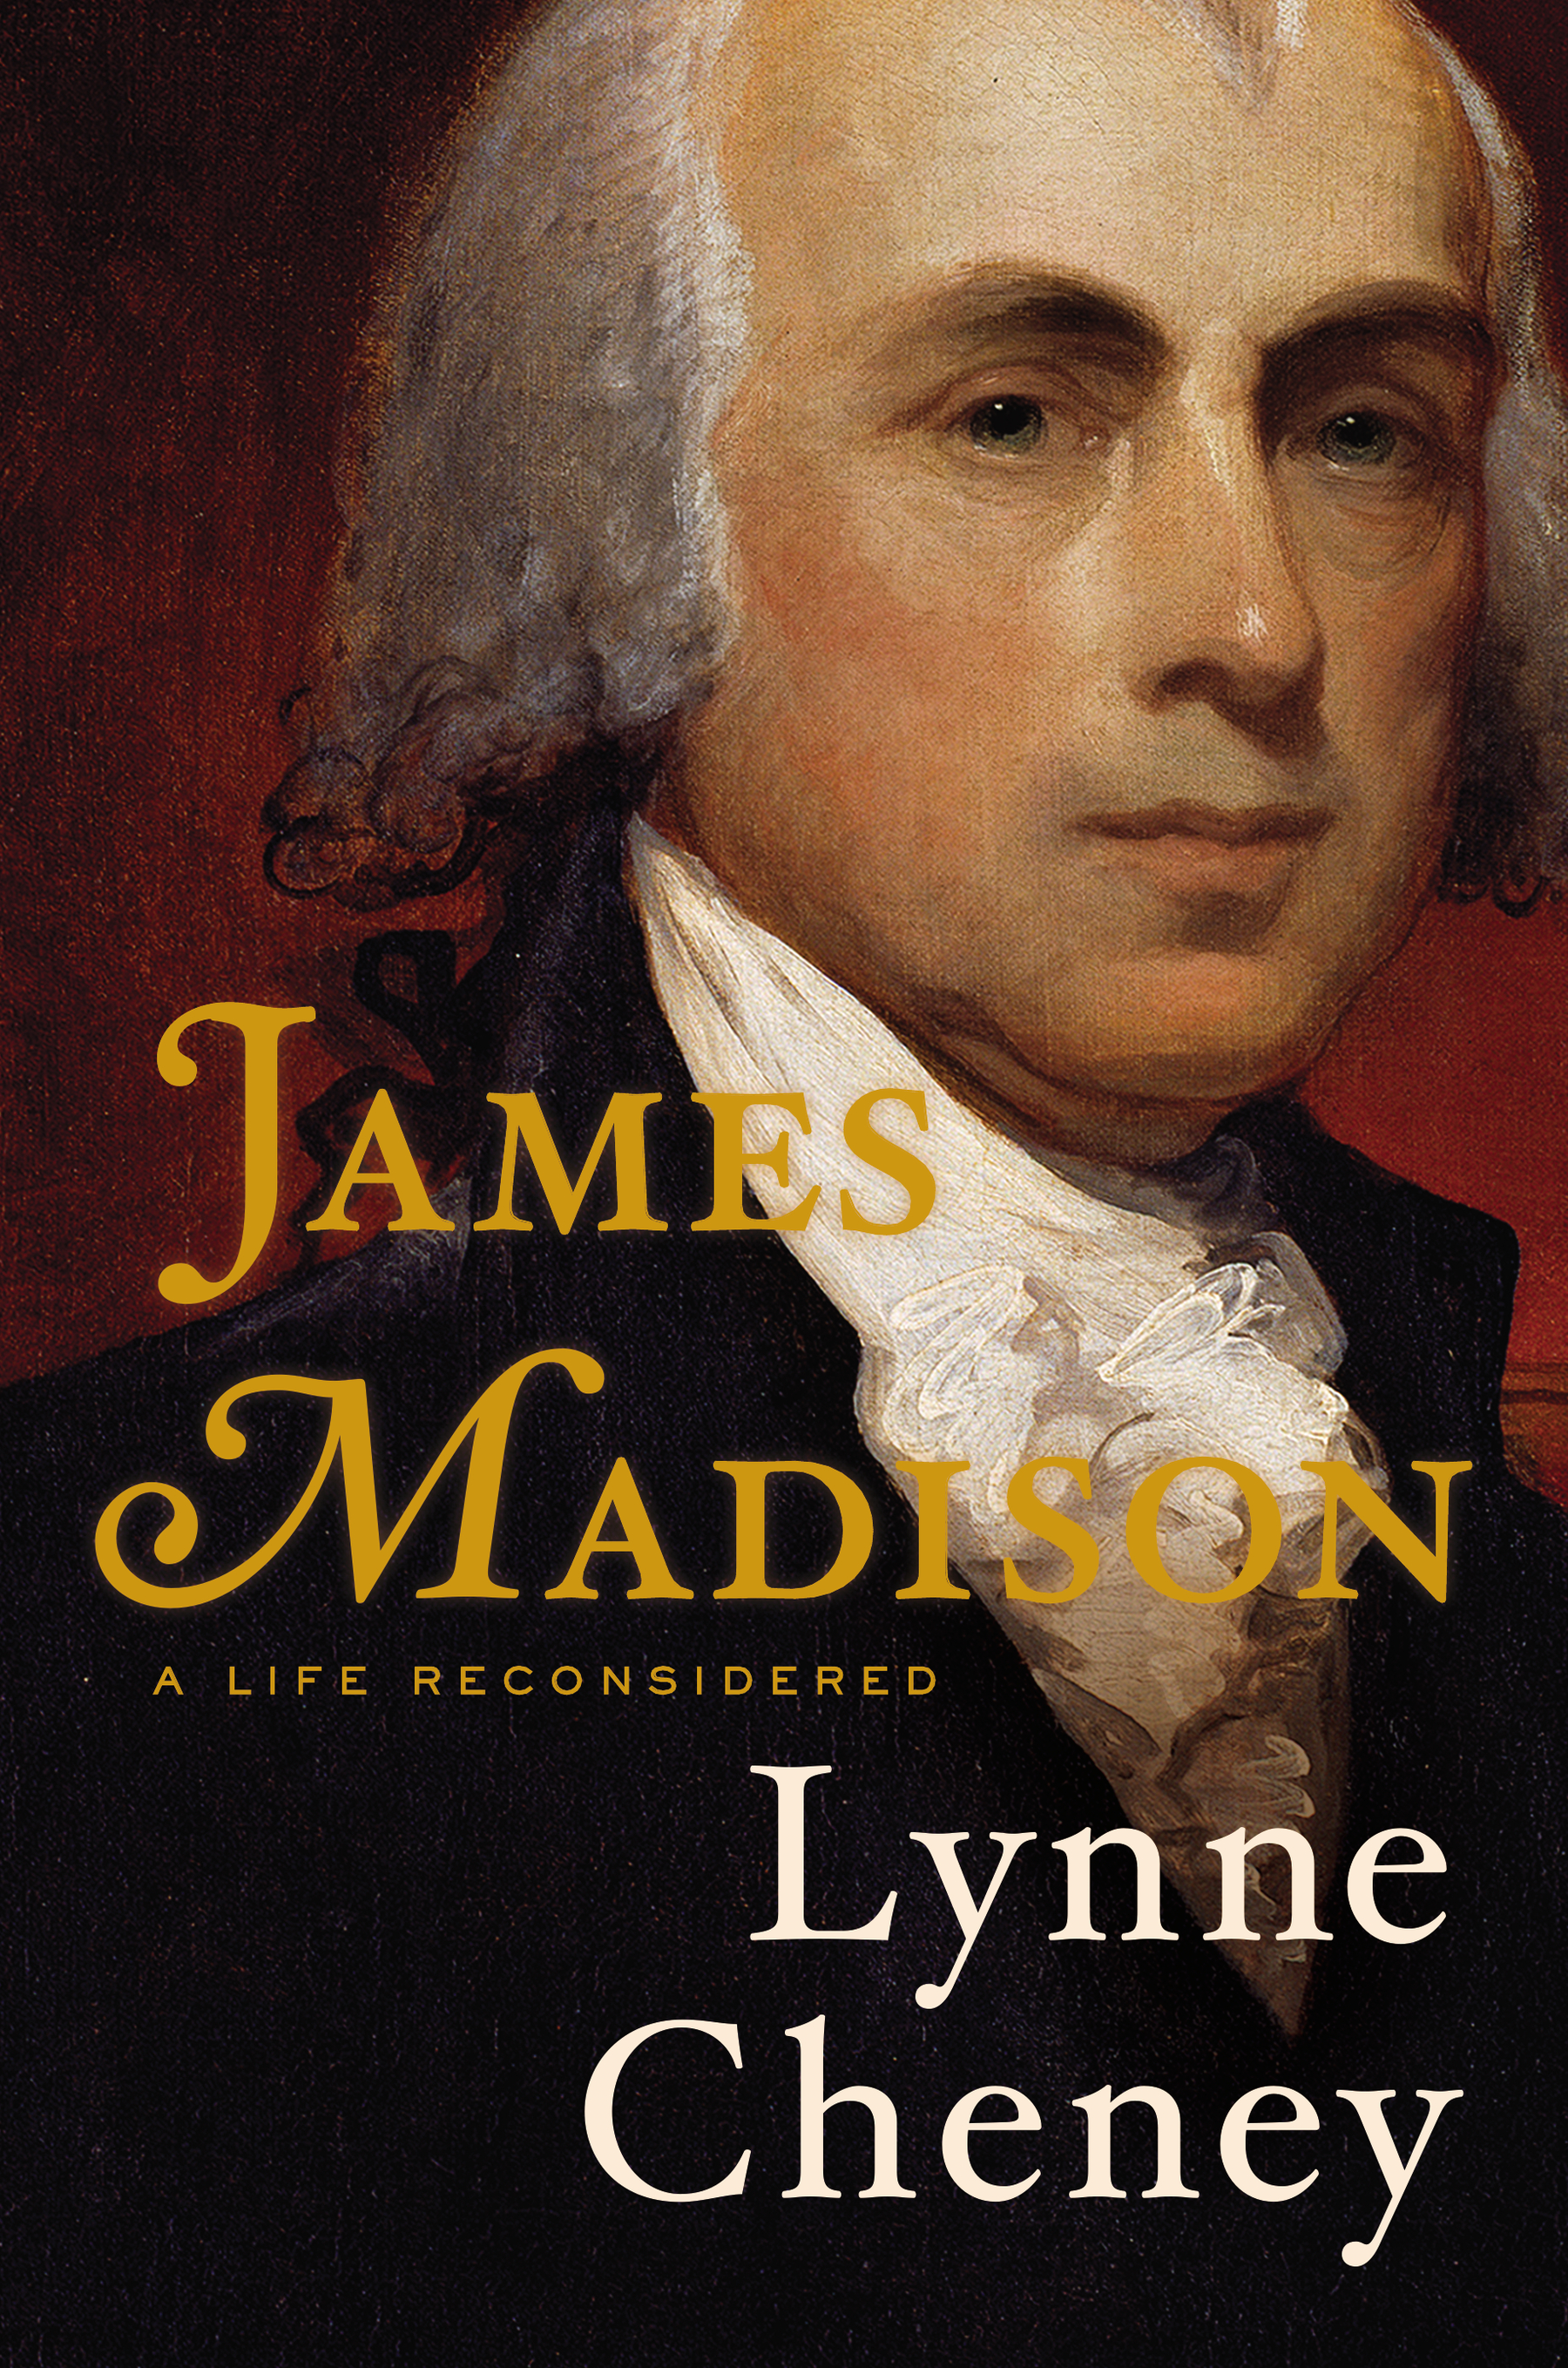 """an introduction to the life of james madison About the papers of james madison the modern edition of the papers of james madison documents the life and times of the virginia statesman we remember today as the """"father of the constitution"""" and the fourth president of the united states."""